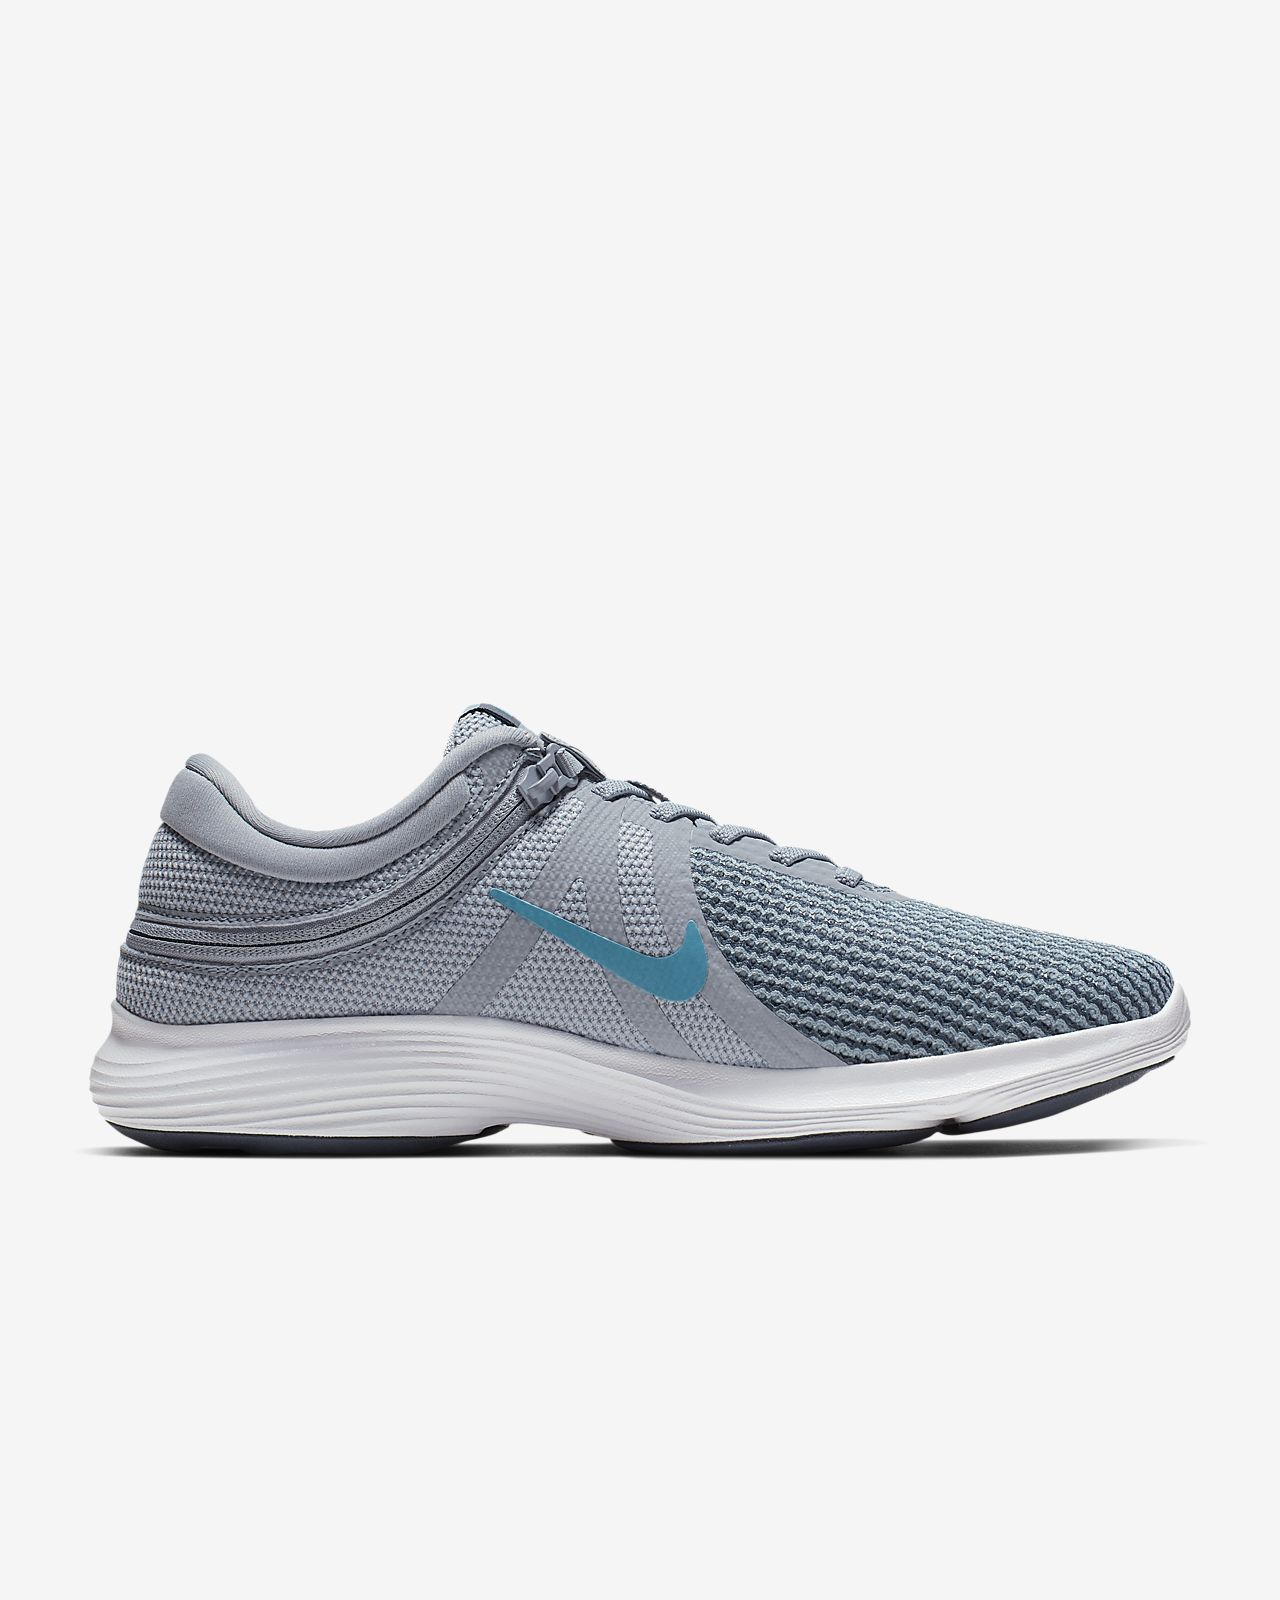 new product 5231e 374d1 nike revolution 4 flyease schuhe